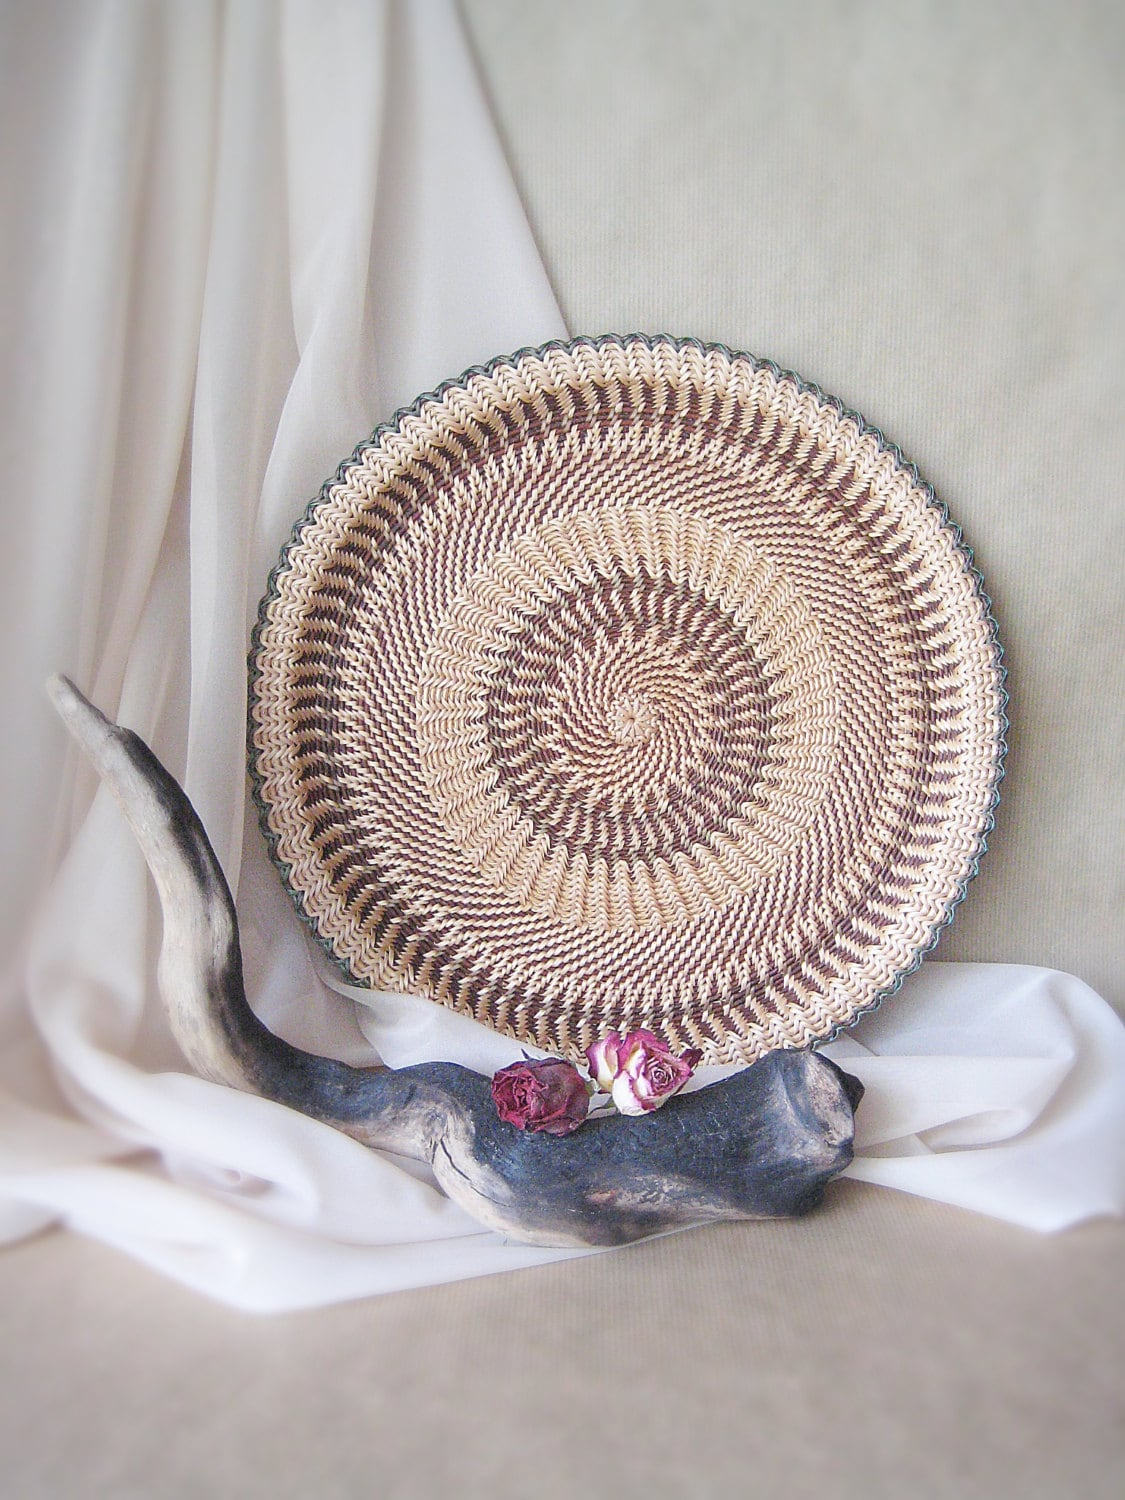 Hand woven wicker wall art decor Ethnic home decor Rustic